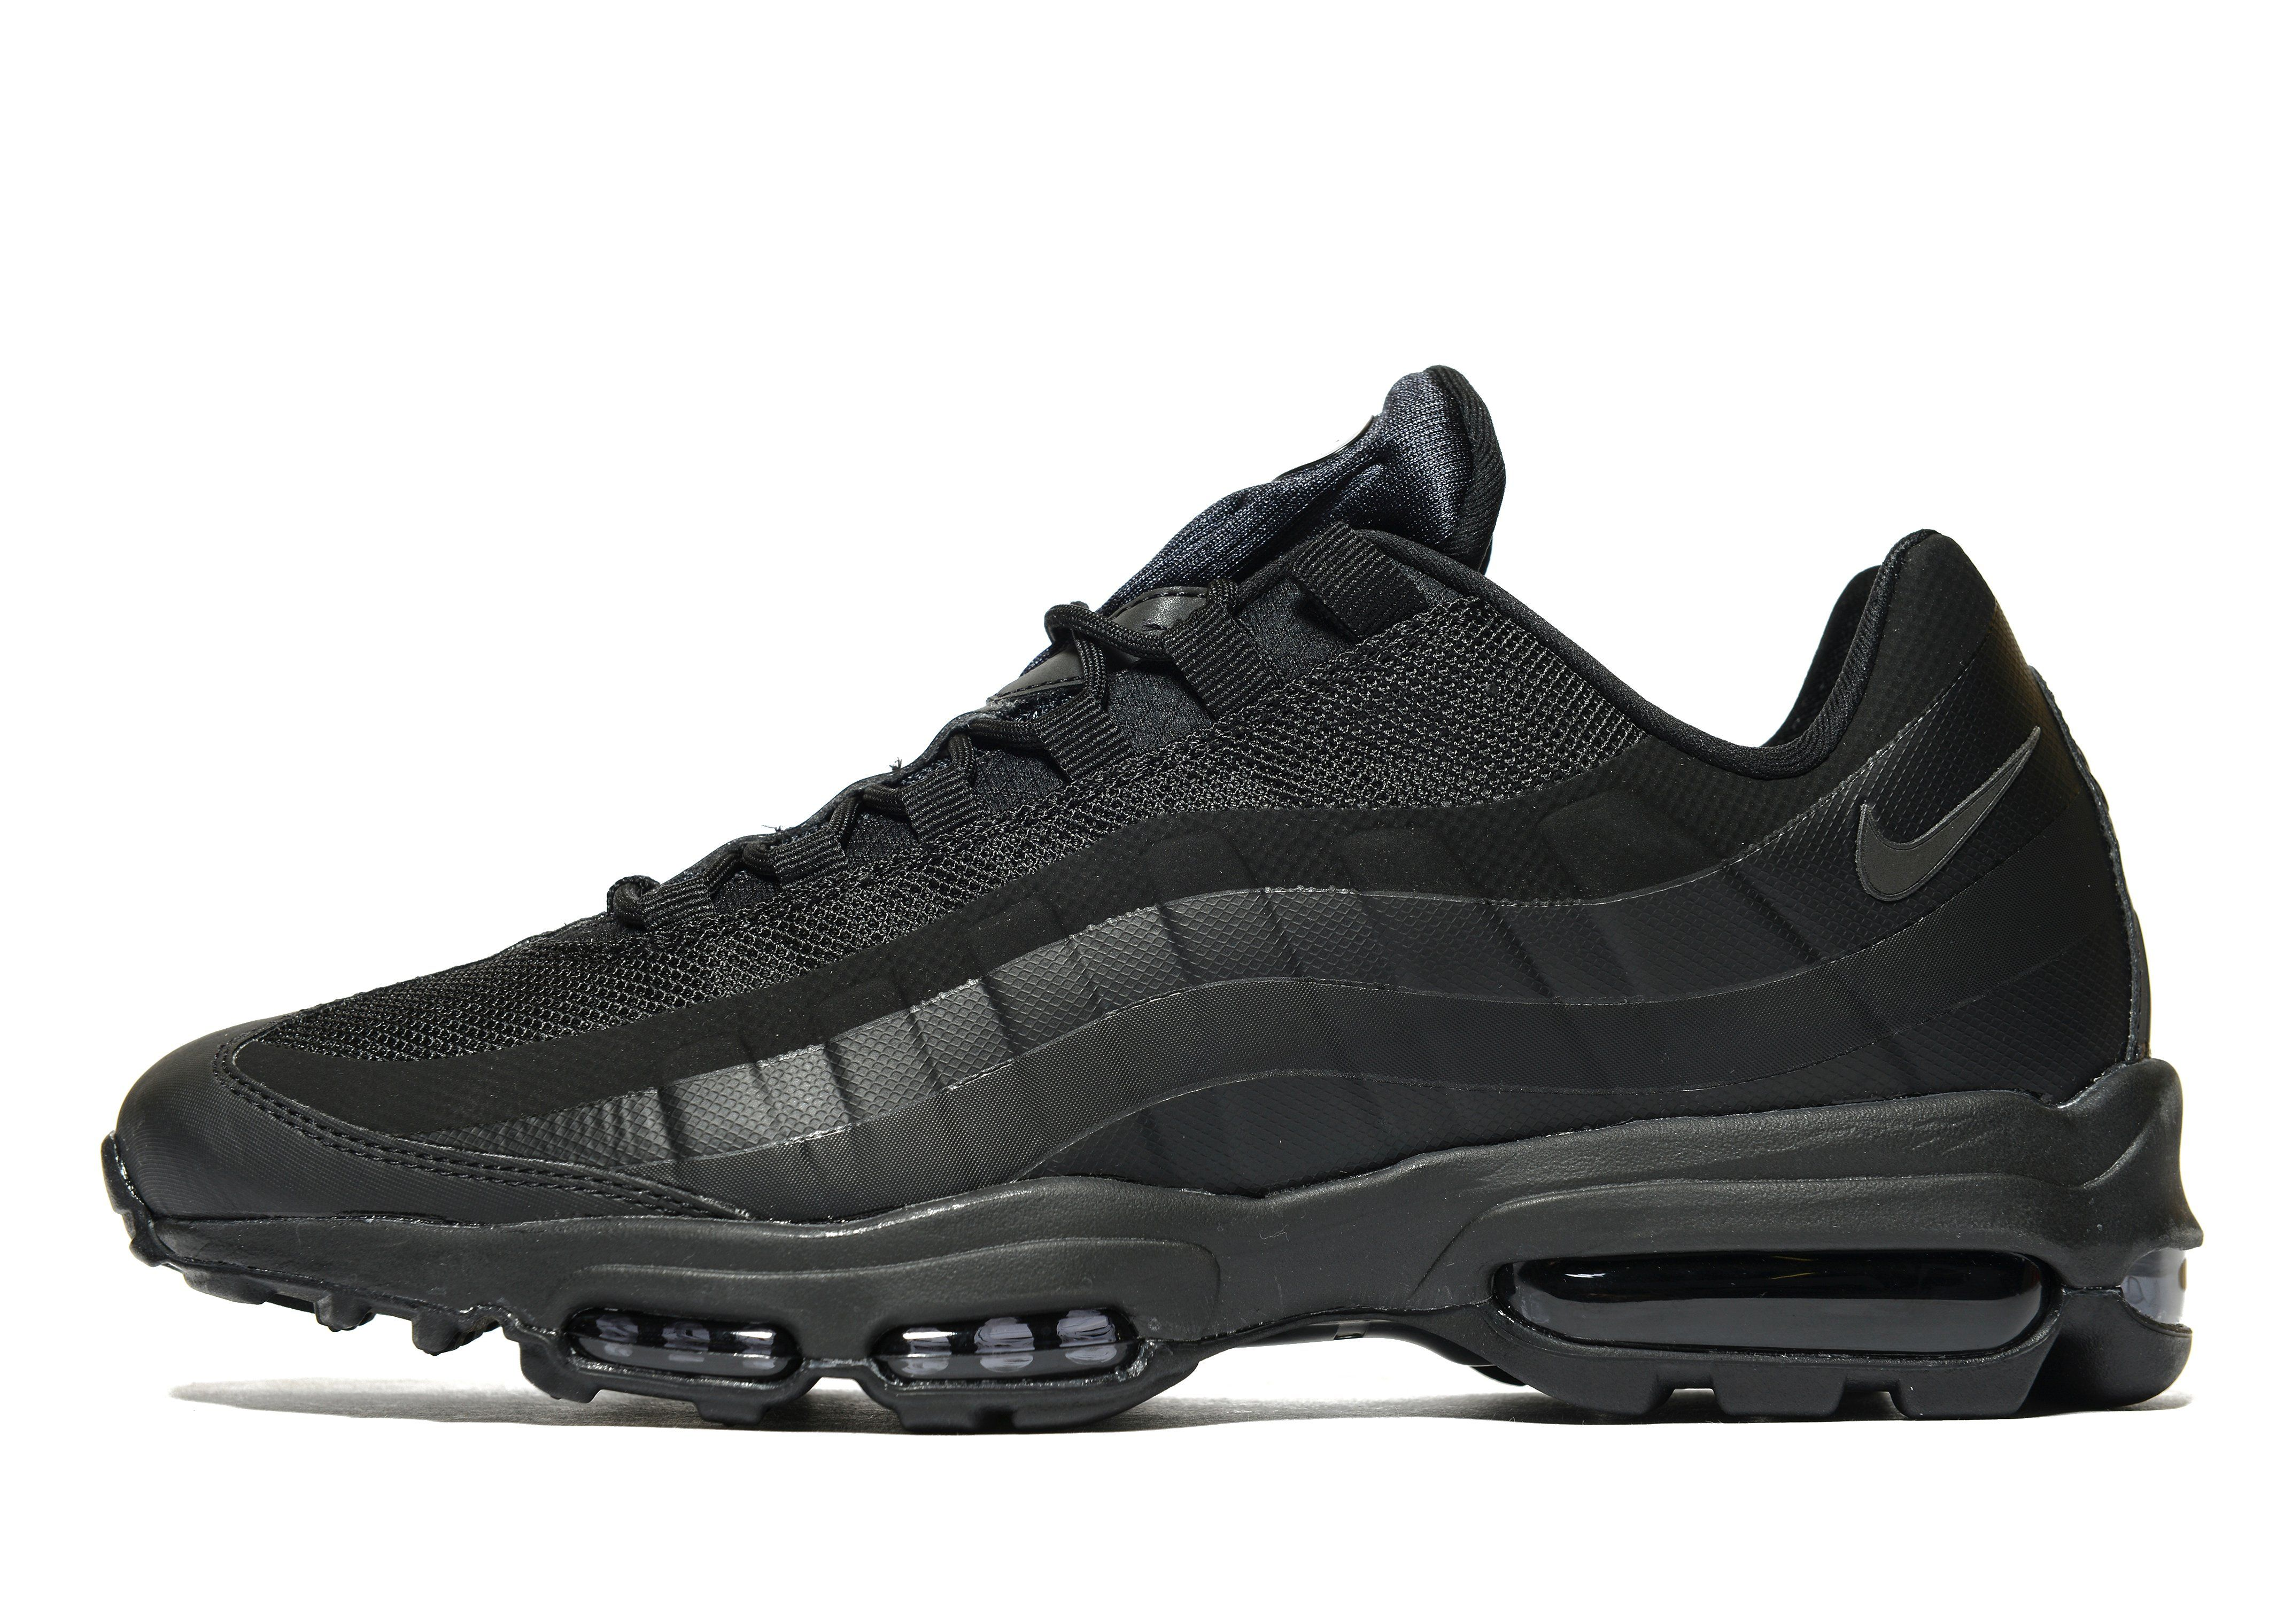 new arrival 6549e e9455 Nike Air Max 95 Ultra Essential ... Nike Air Max 90 Leather (PS) Dark ...